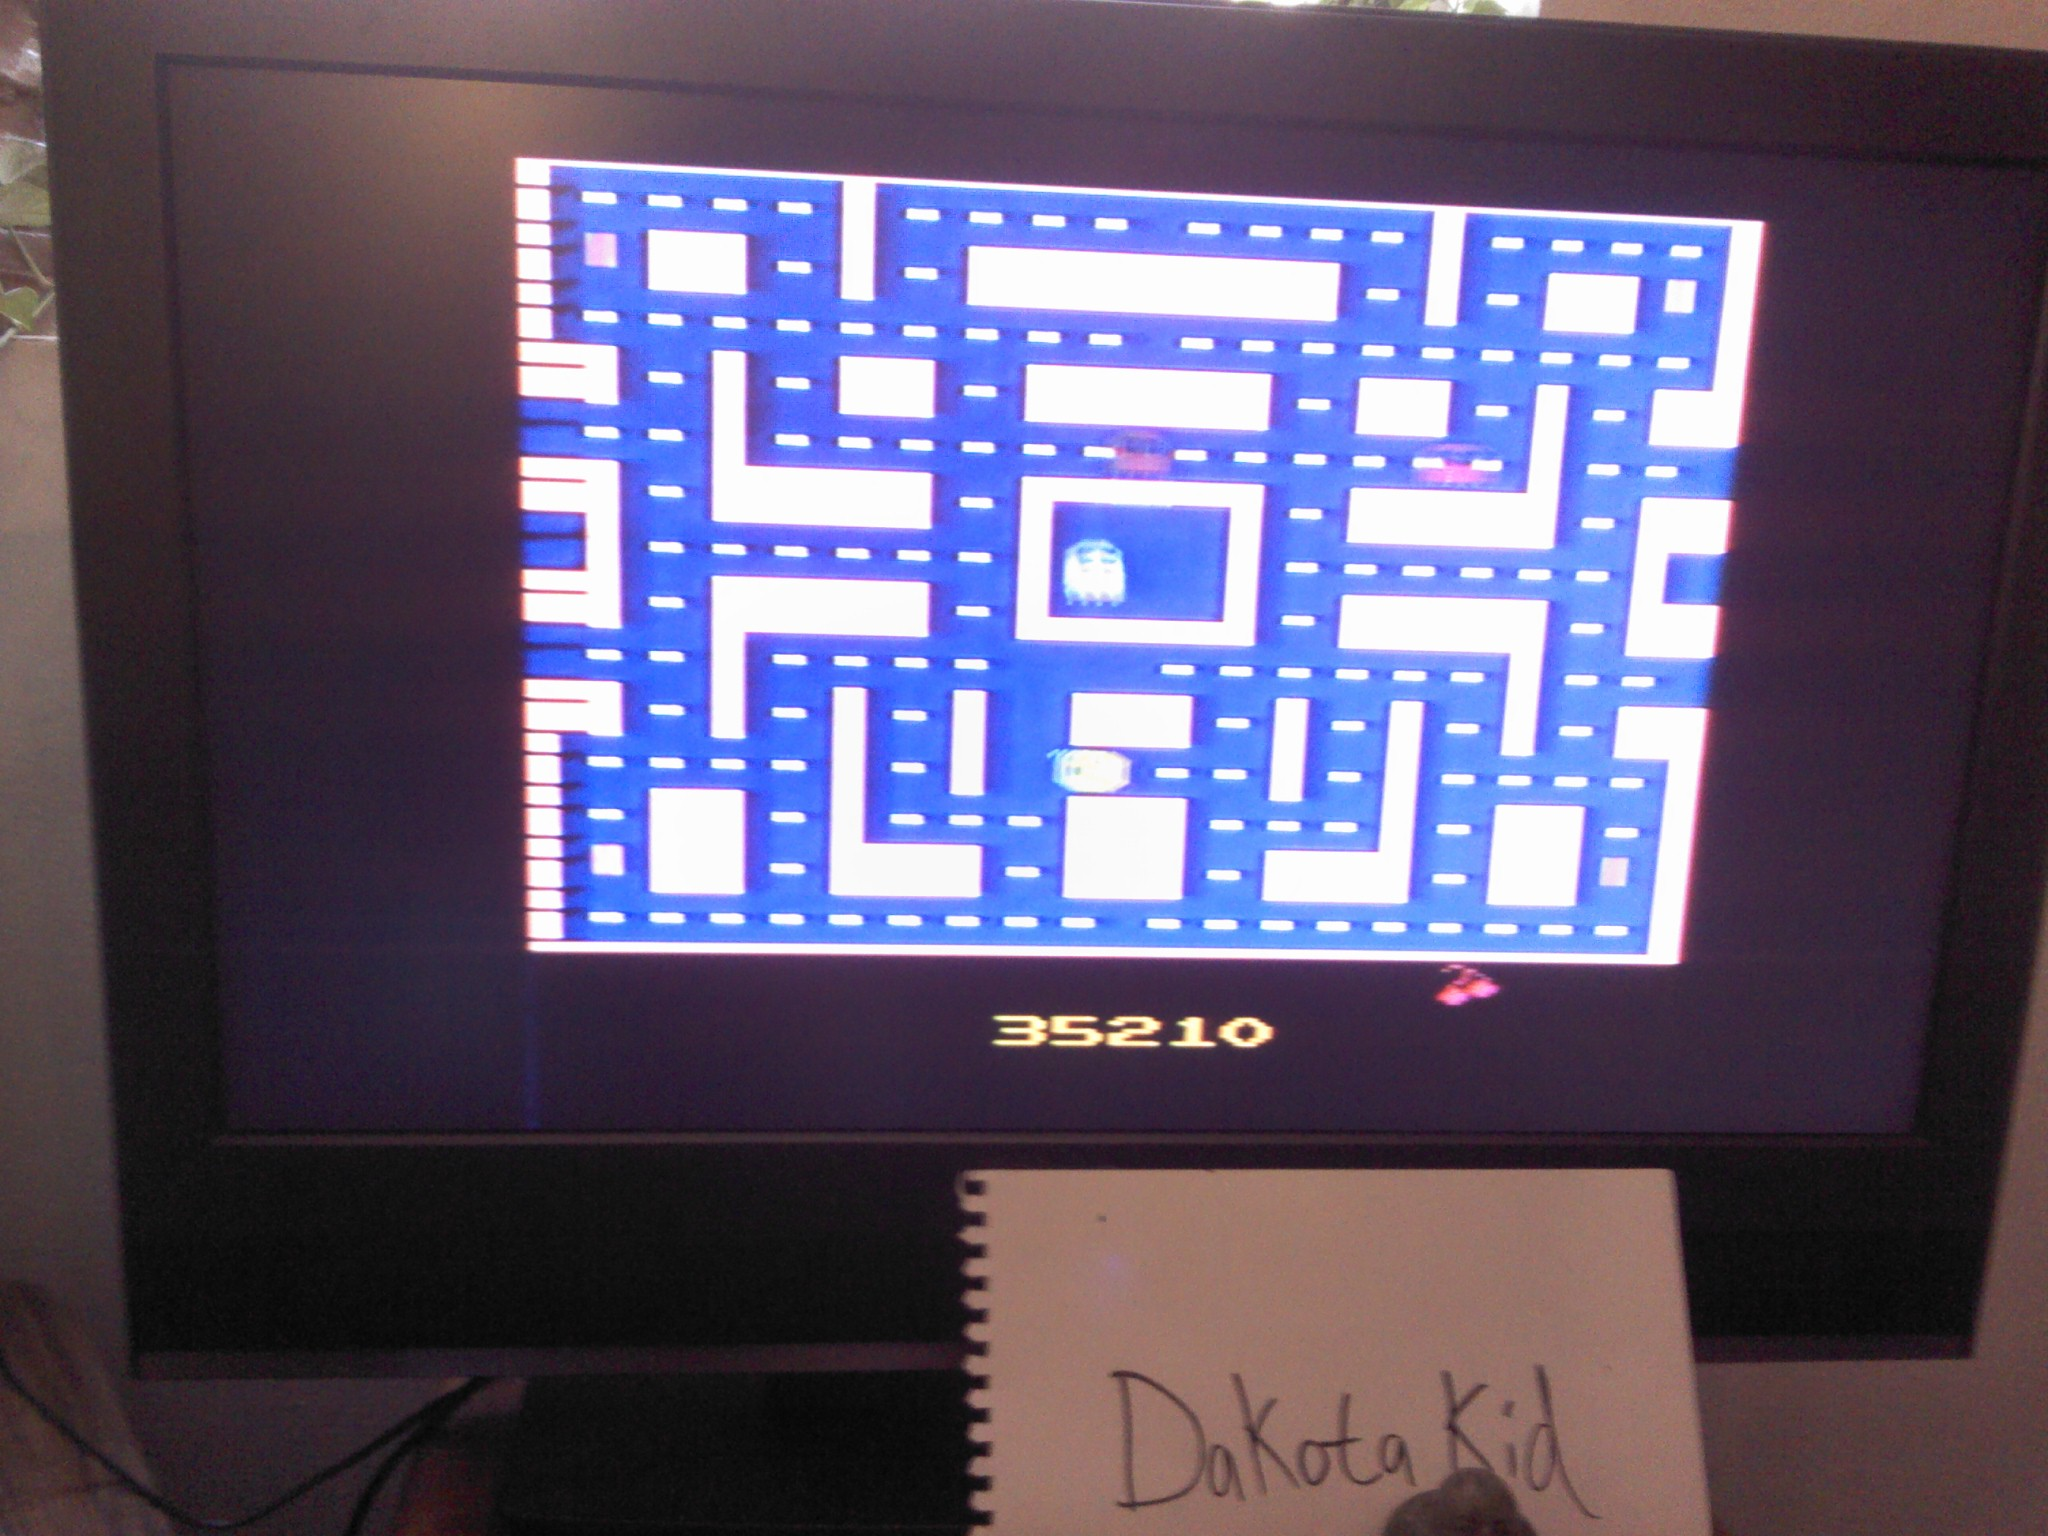 DakotaKid: Ms. Pac-Man (Atari 2600) 35,210 points on 2014-04-01 19:09:17